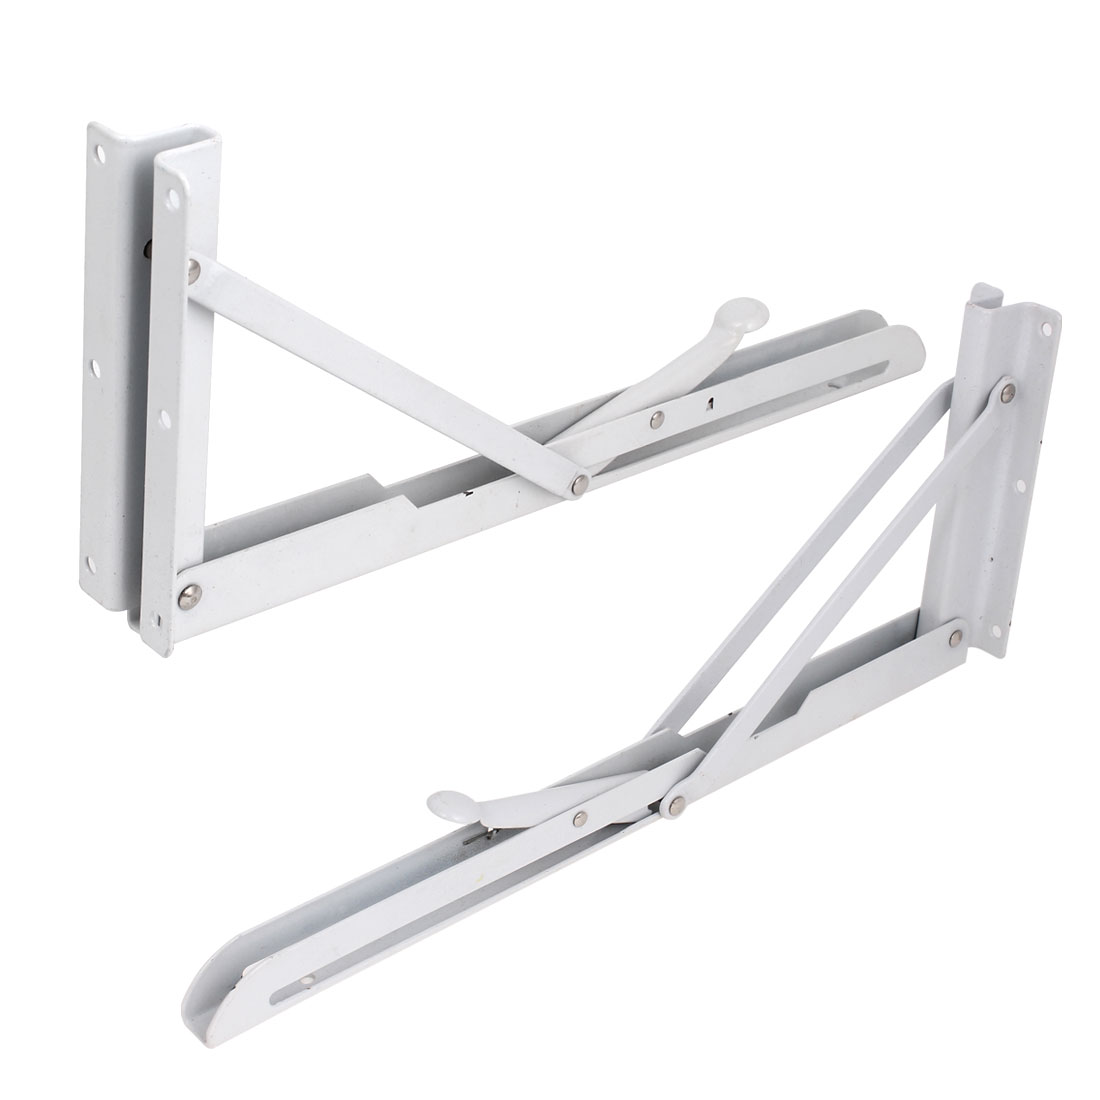 "2 Pcs 14"" Metal Release Catch Support Bench Table Folding Shelf Bracket White"